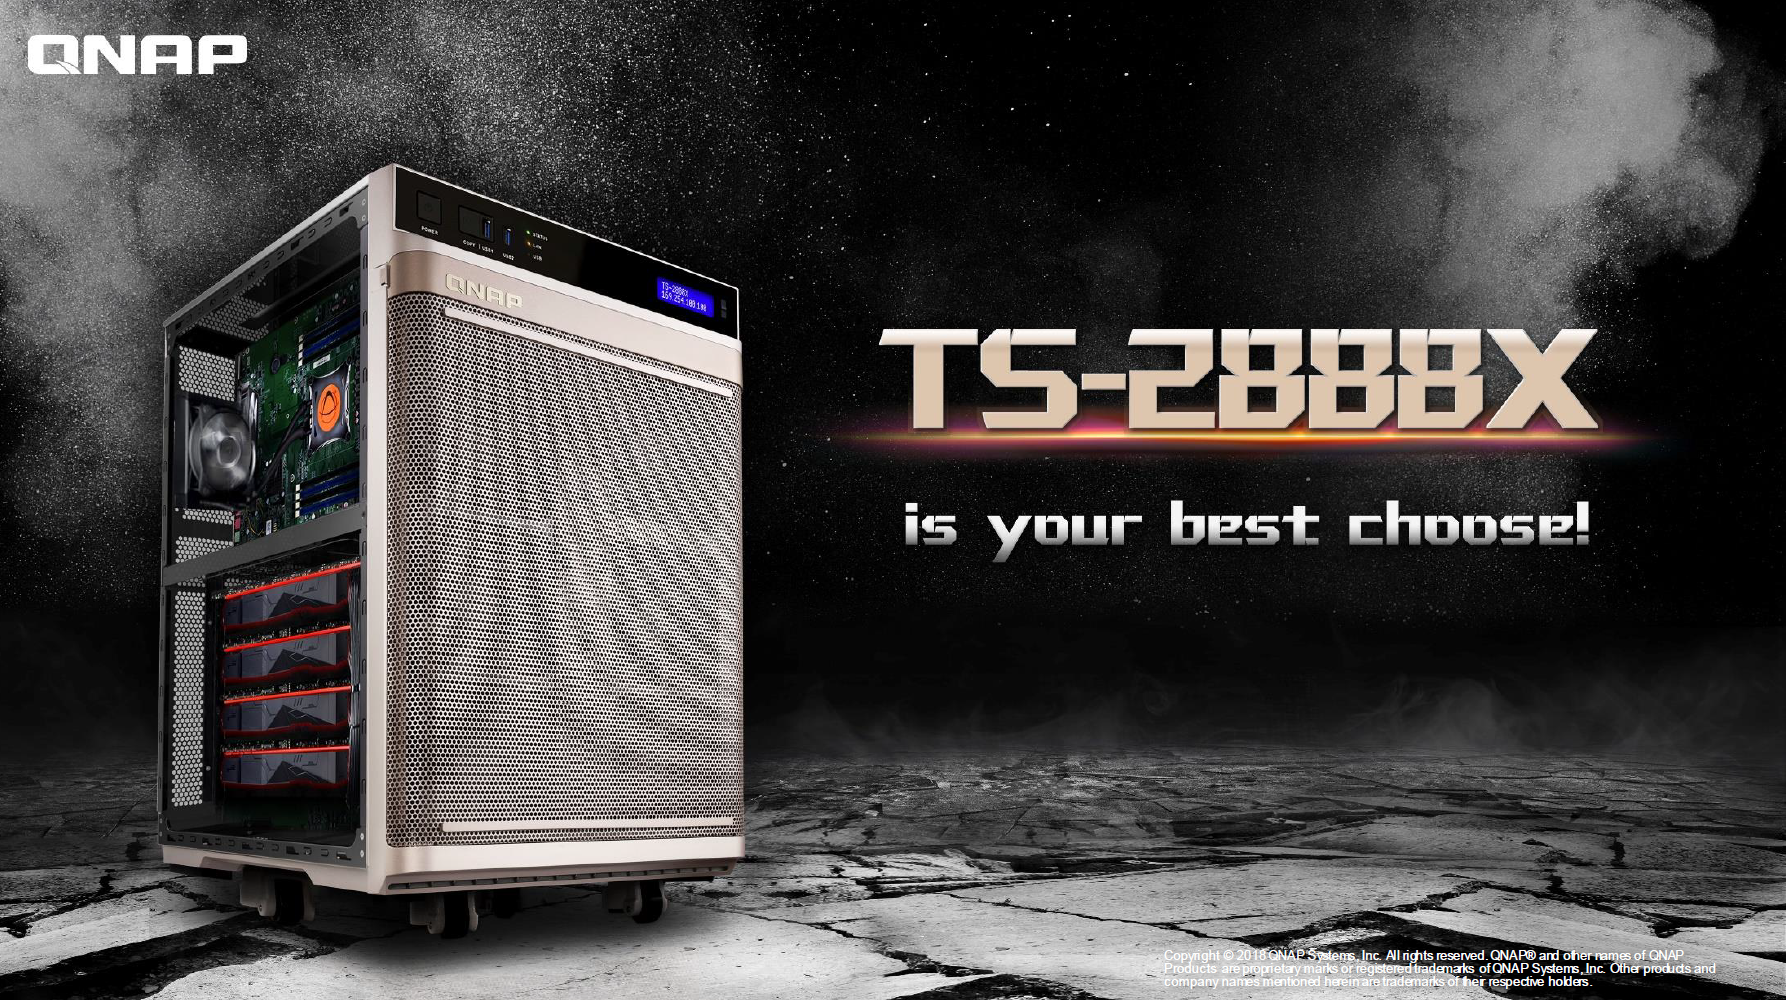 QNAP Introduces the TS-2888X AI-ready NAS | TechPowerUp Forums